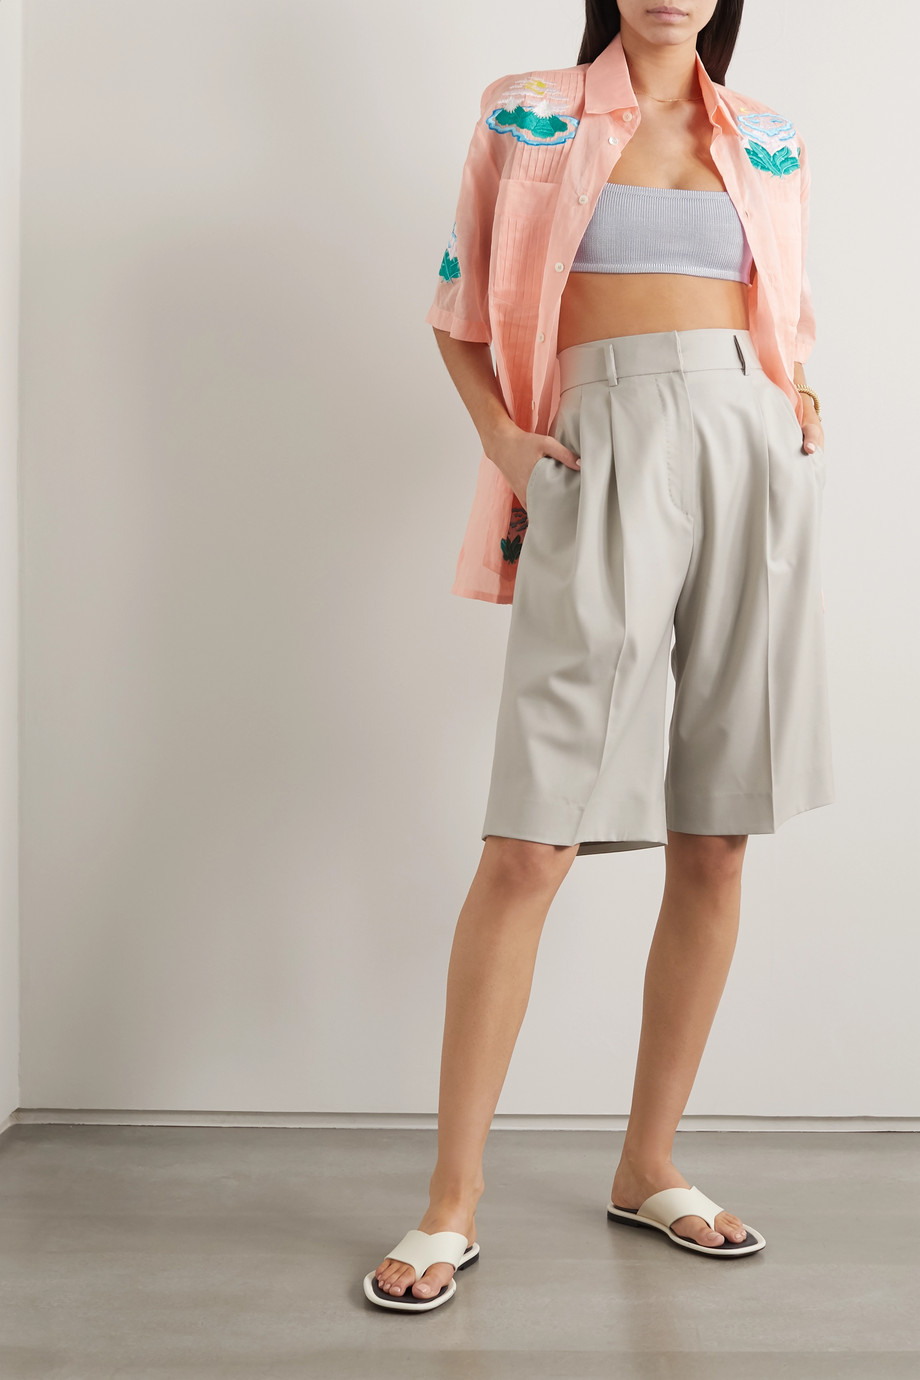 Calle Del Mar Cropped stretch-knit top